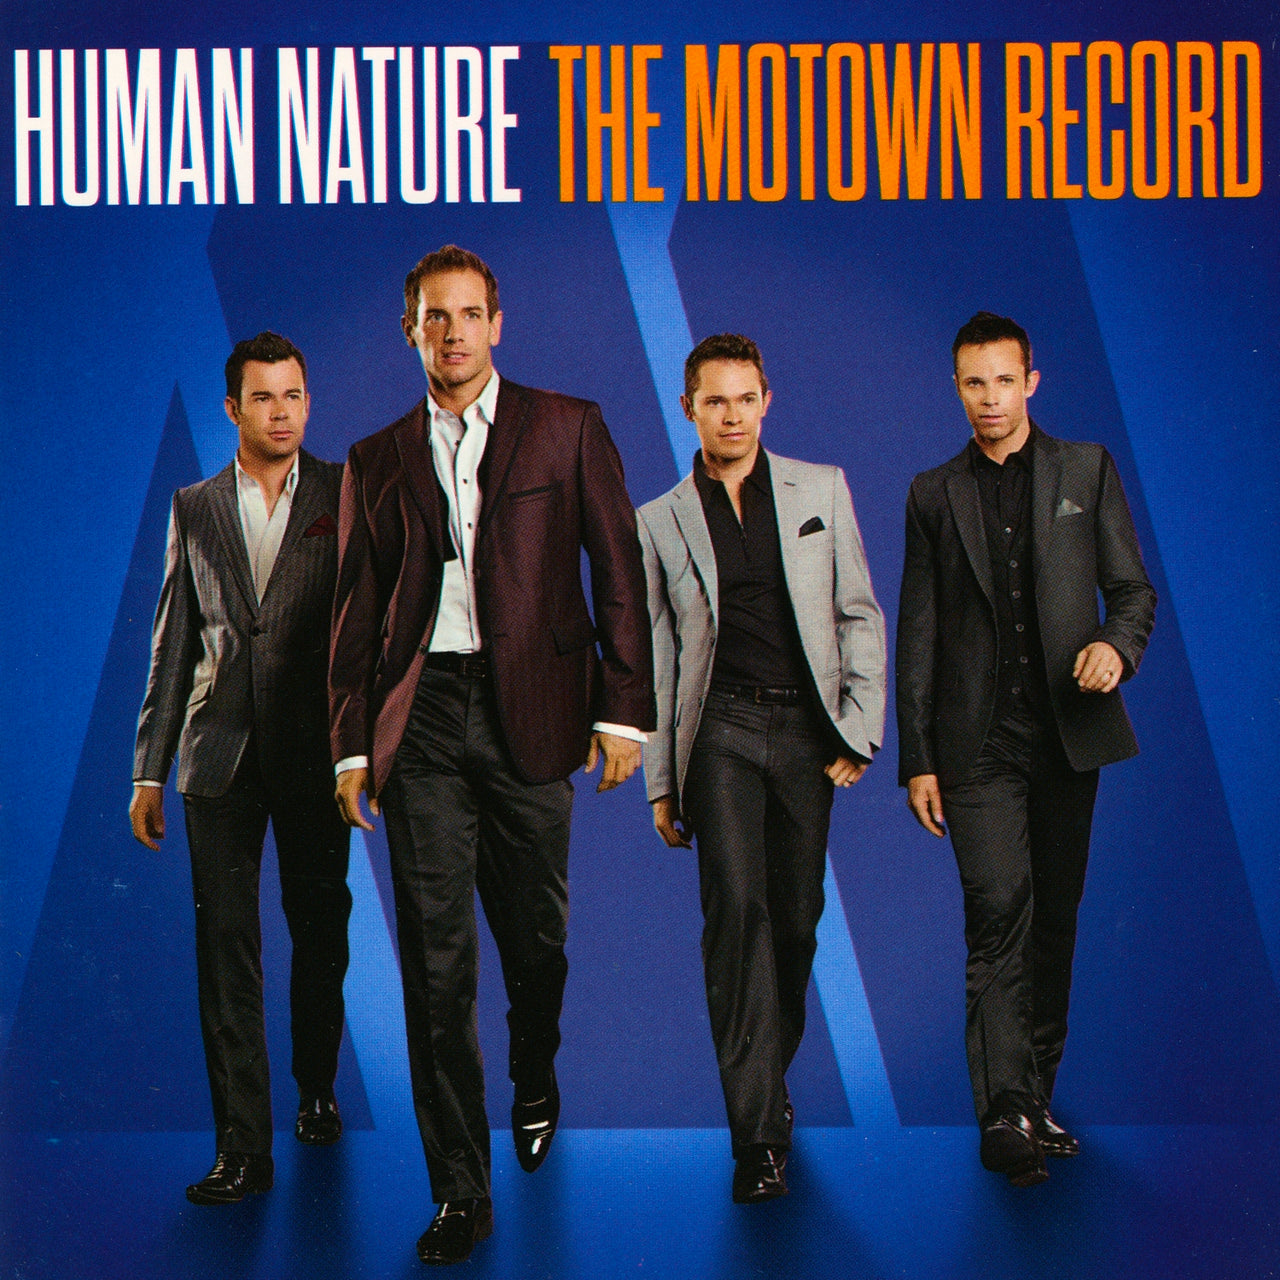 Human Nature : The Motown Record  CD